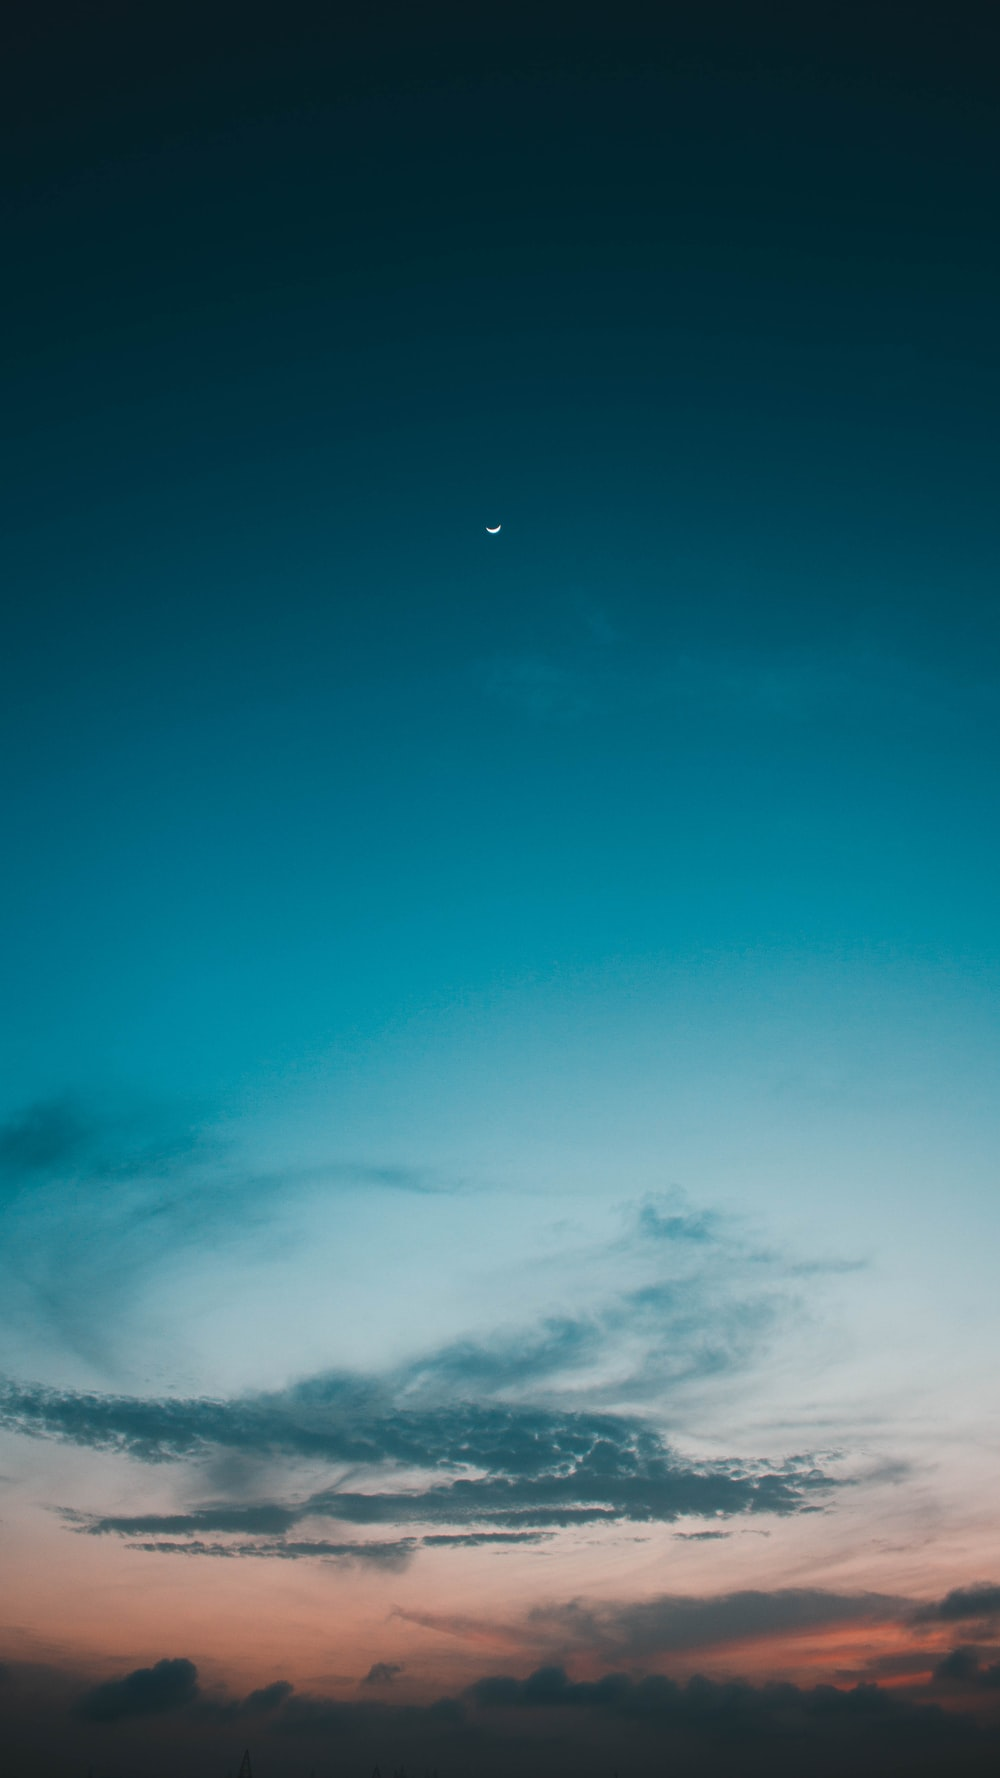 Blue Clouds And White Sky Photo Free Sky Image On Unsplash